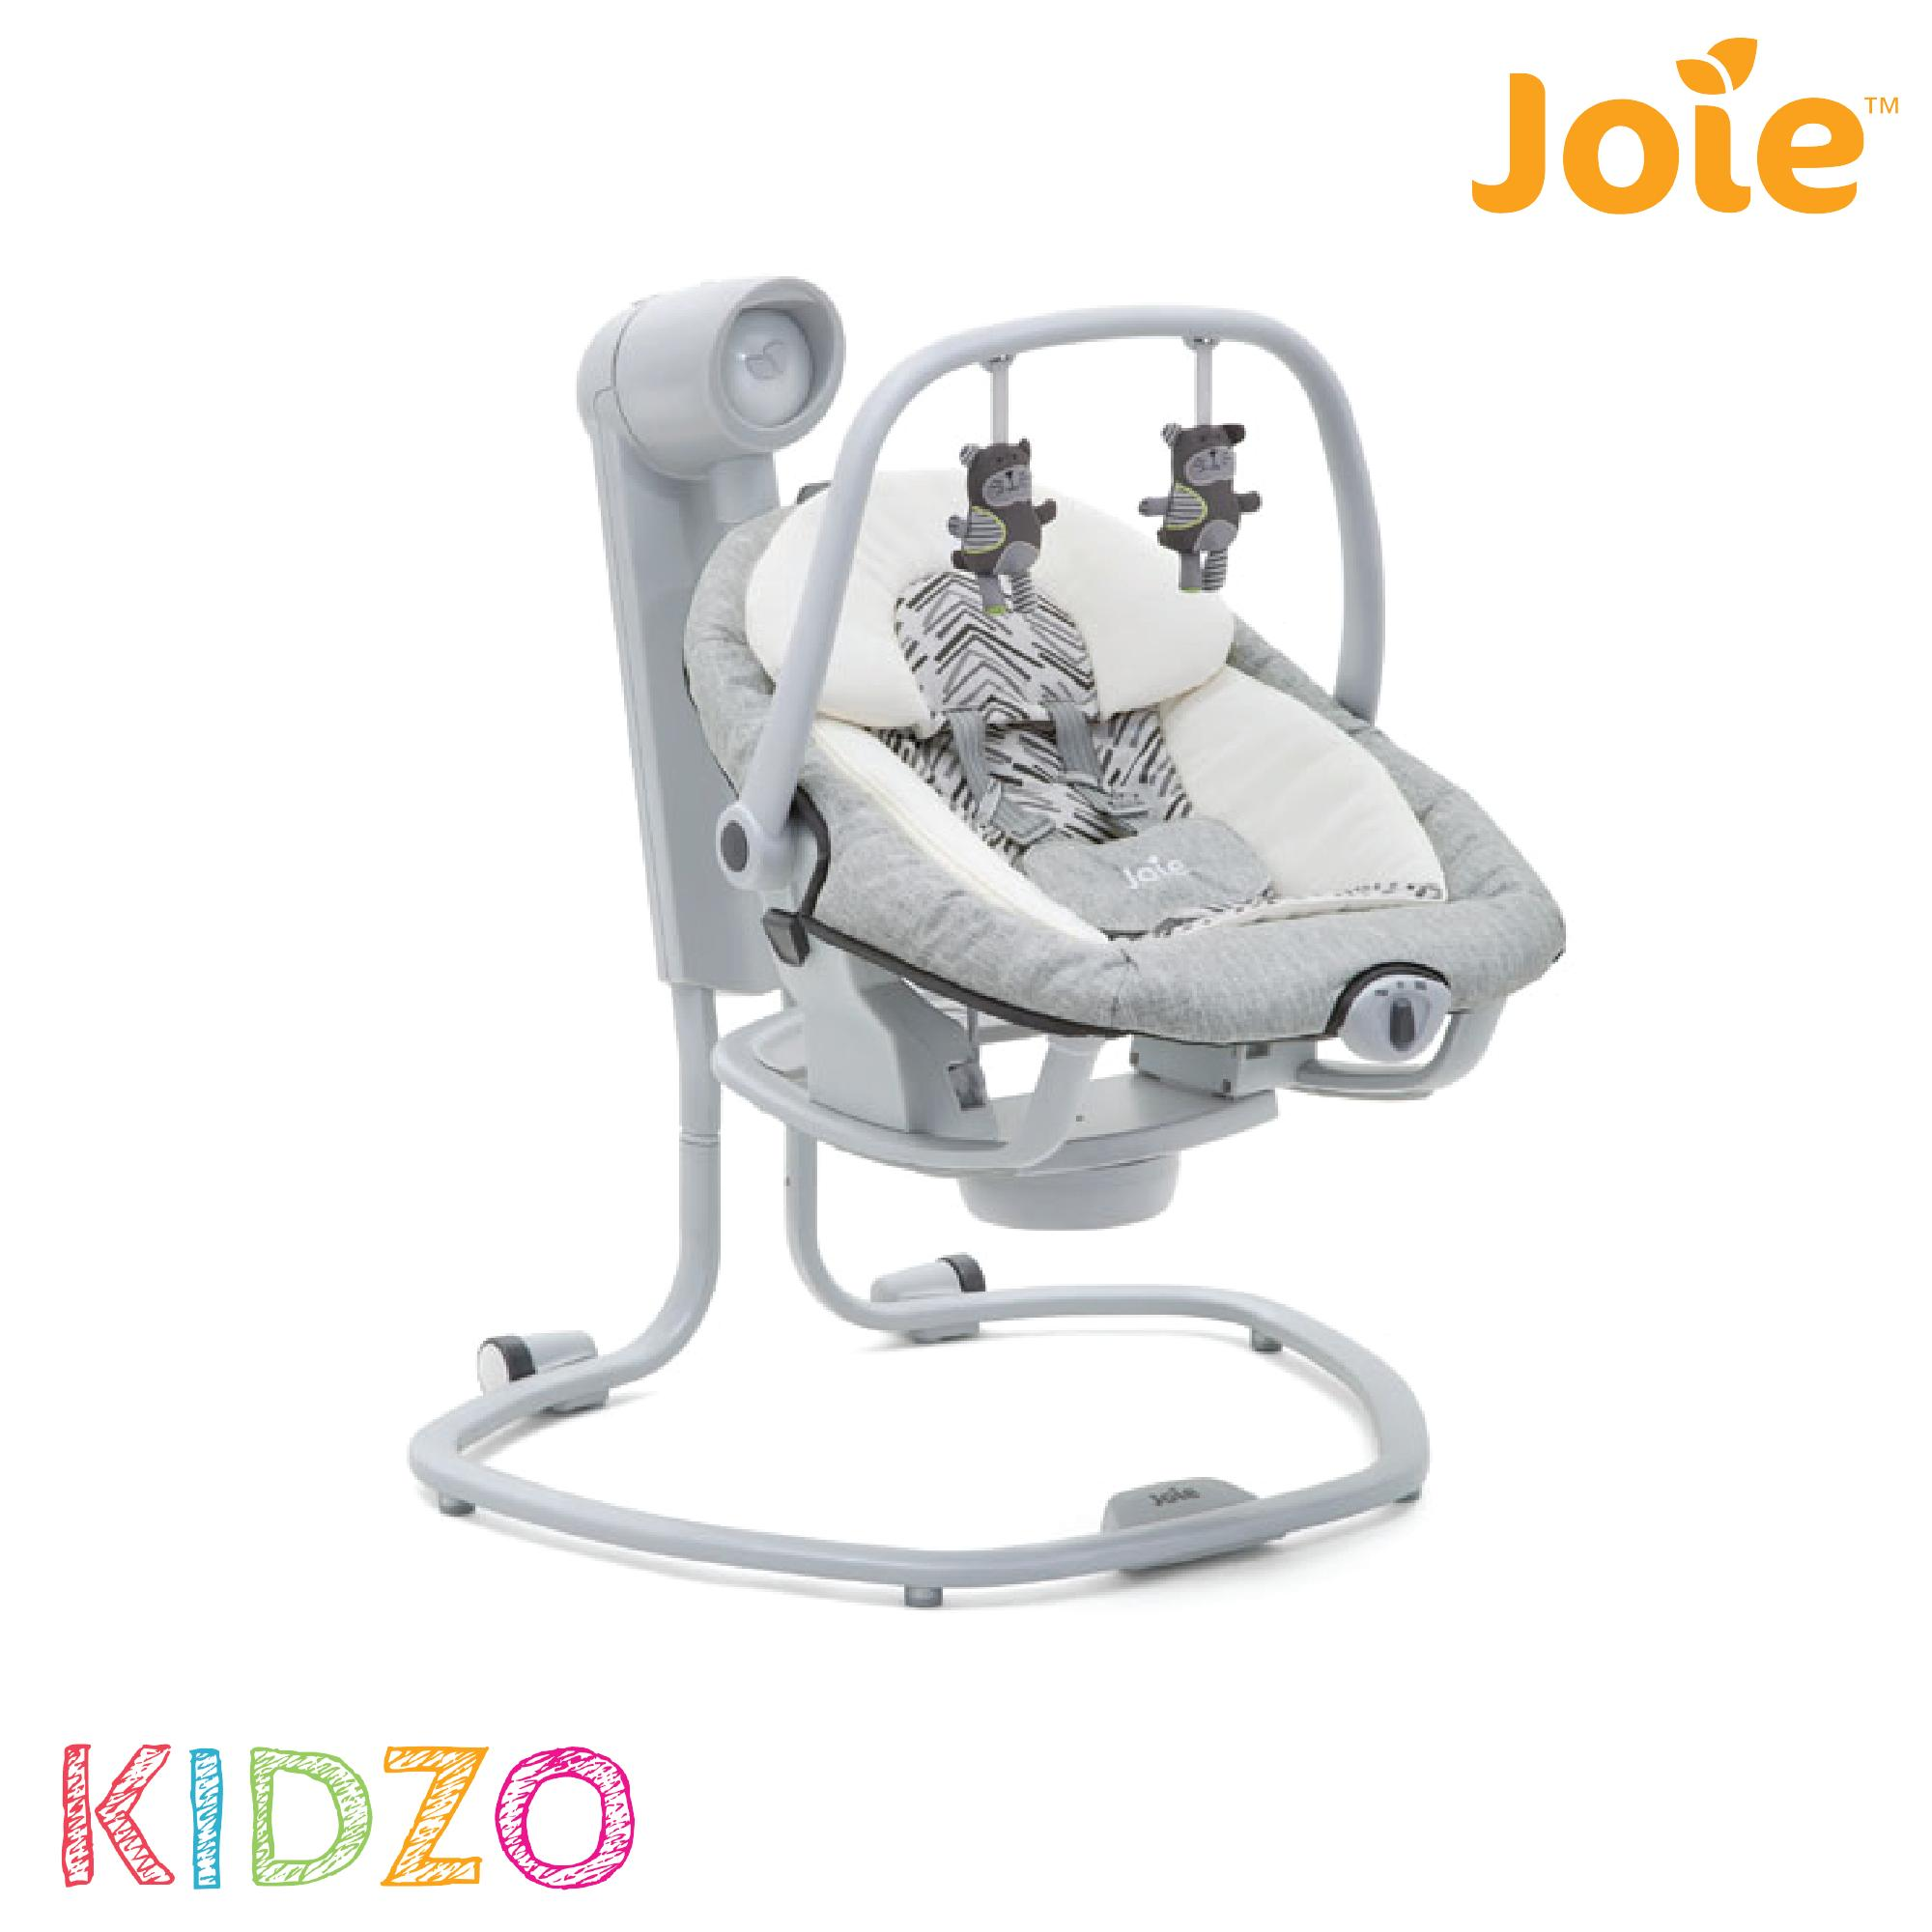 Joie Baby Head Office Buy Joie Top Products Online Lazada Sg